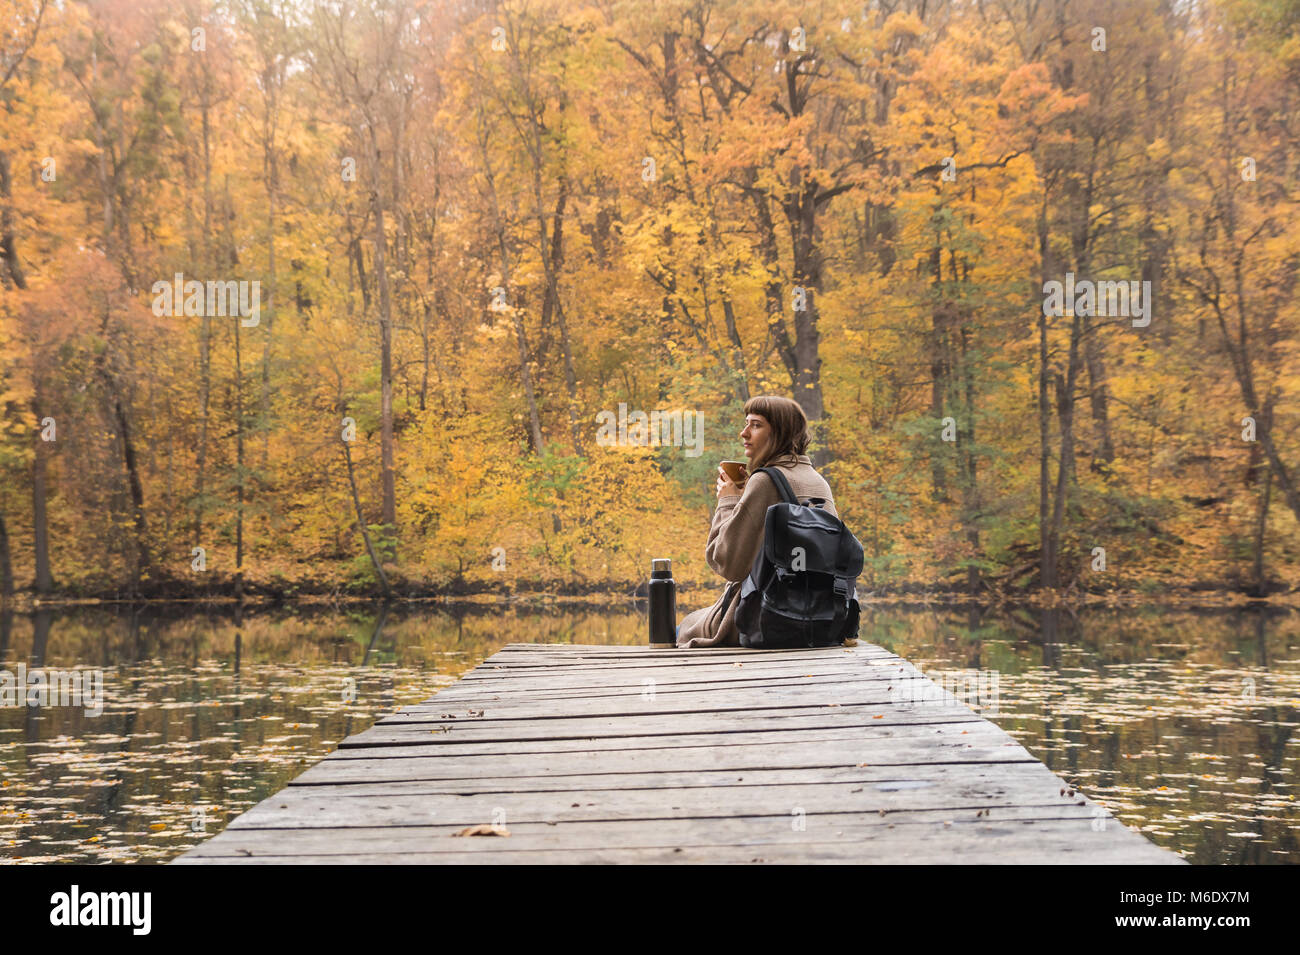 Young female hiker with backpack se trouve au rivage, boit du café et ressemble à de beaux paysages de Photo Stock